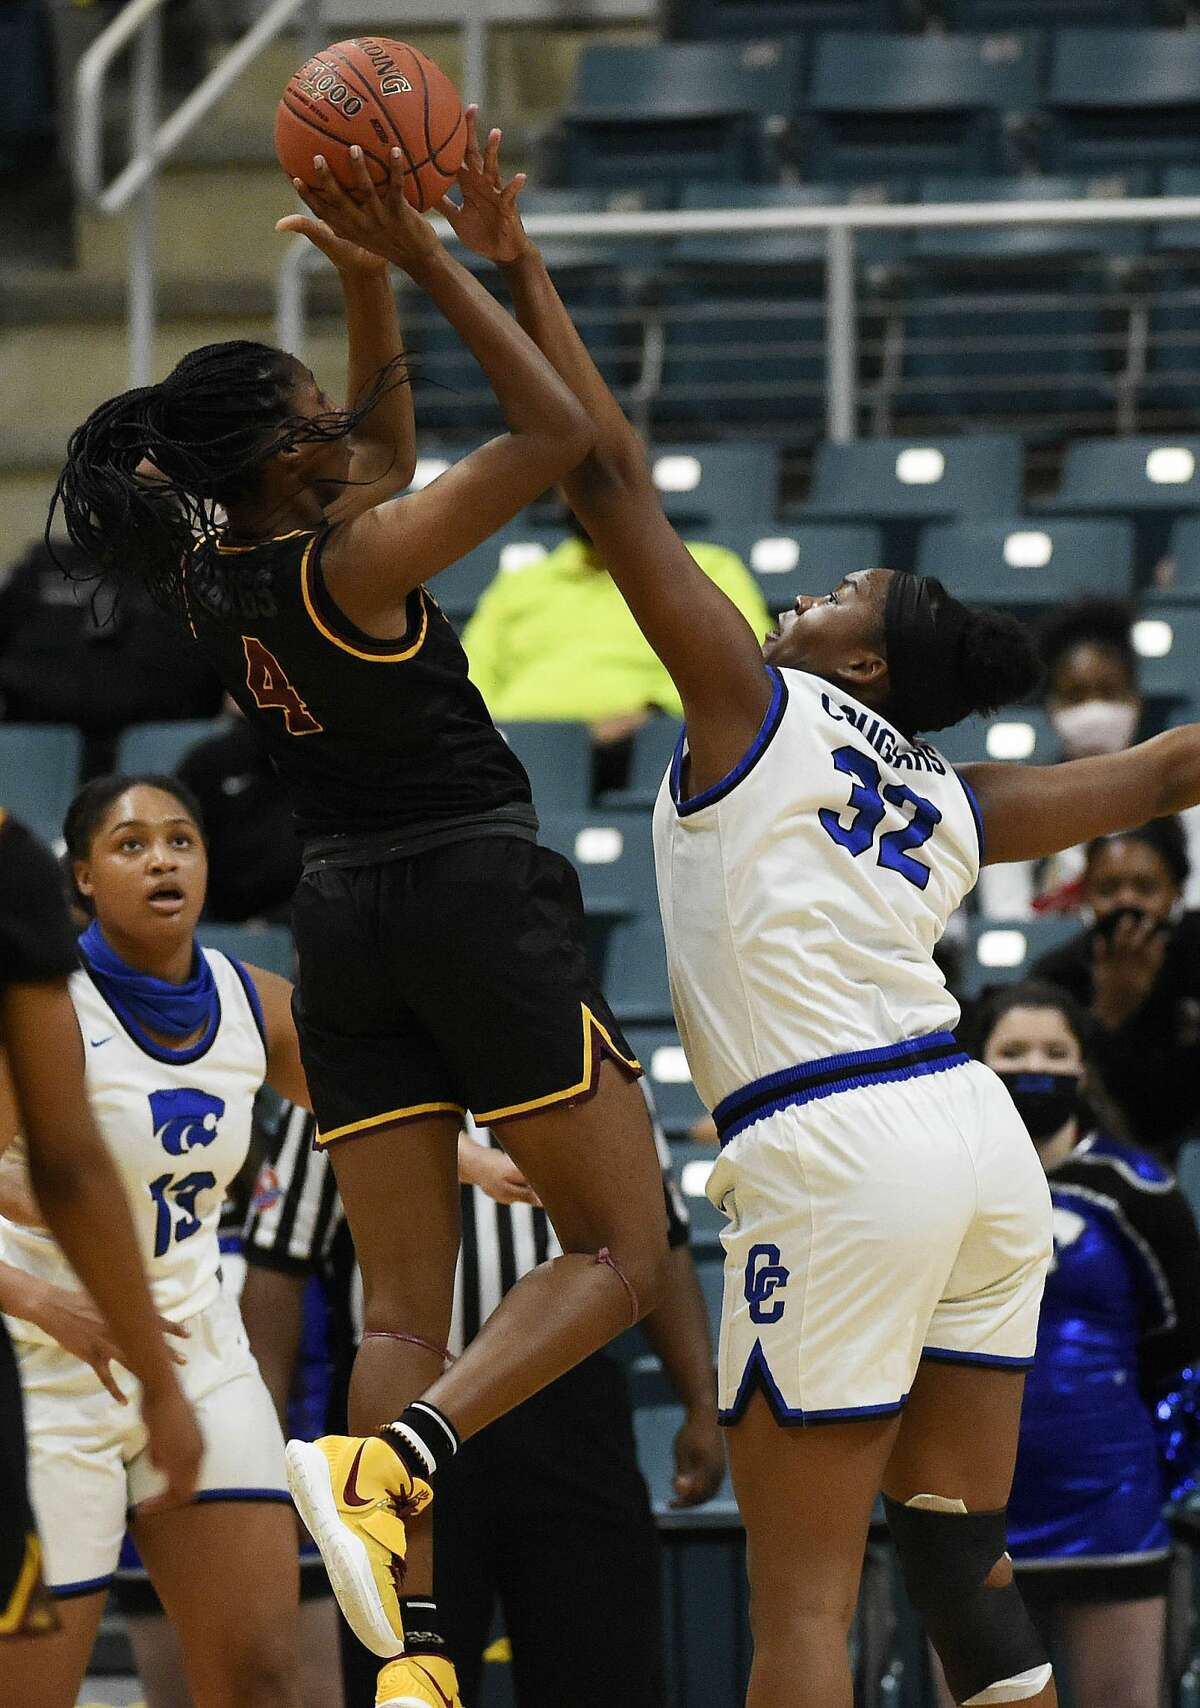 Summer Creek forward Kaitlyn Duhon (4) shoots as Cypress Creek center Taylor Jackson defends during the first half of a 6A Region III semifinal high school basketball playoff game, Friday, Feb. 26, 2021, in Katy, TX.